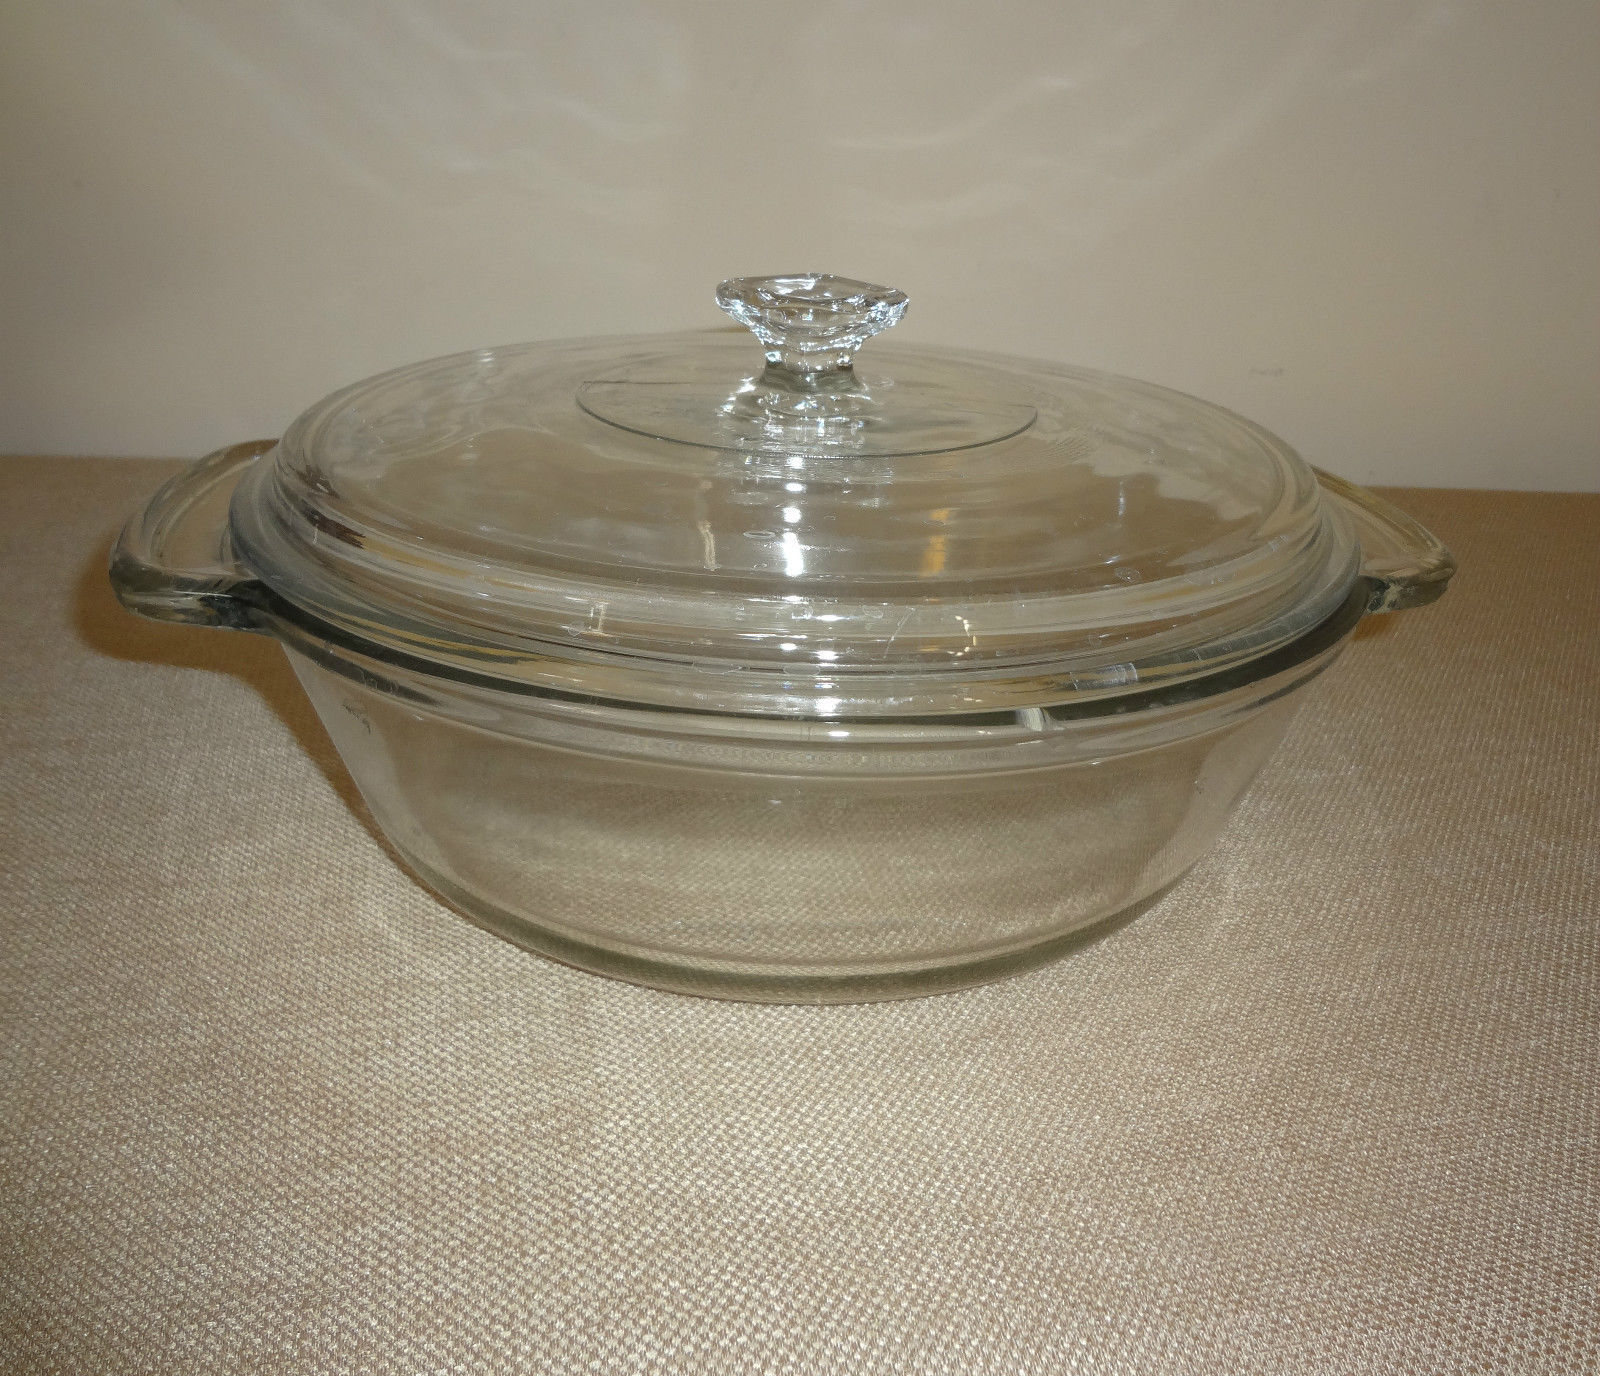 how to clean glass baking dish